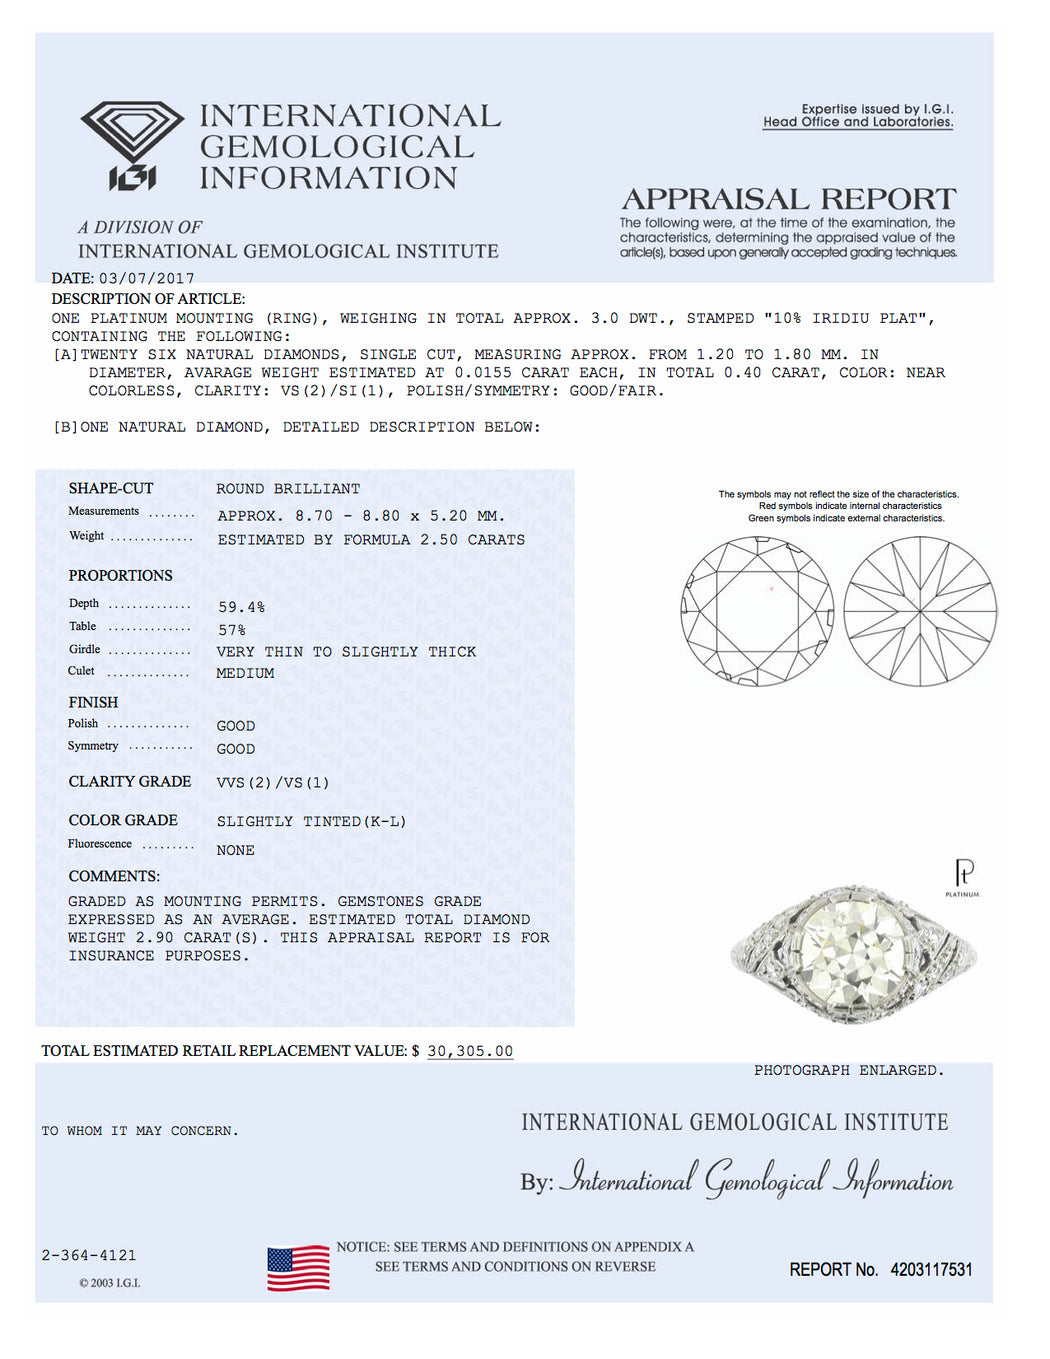 are size of igi a diamonds many characteristics diagram report representation small issued appear on any diamond graphic plotted gemological diamondcert for institute and proportions reports the international